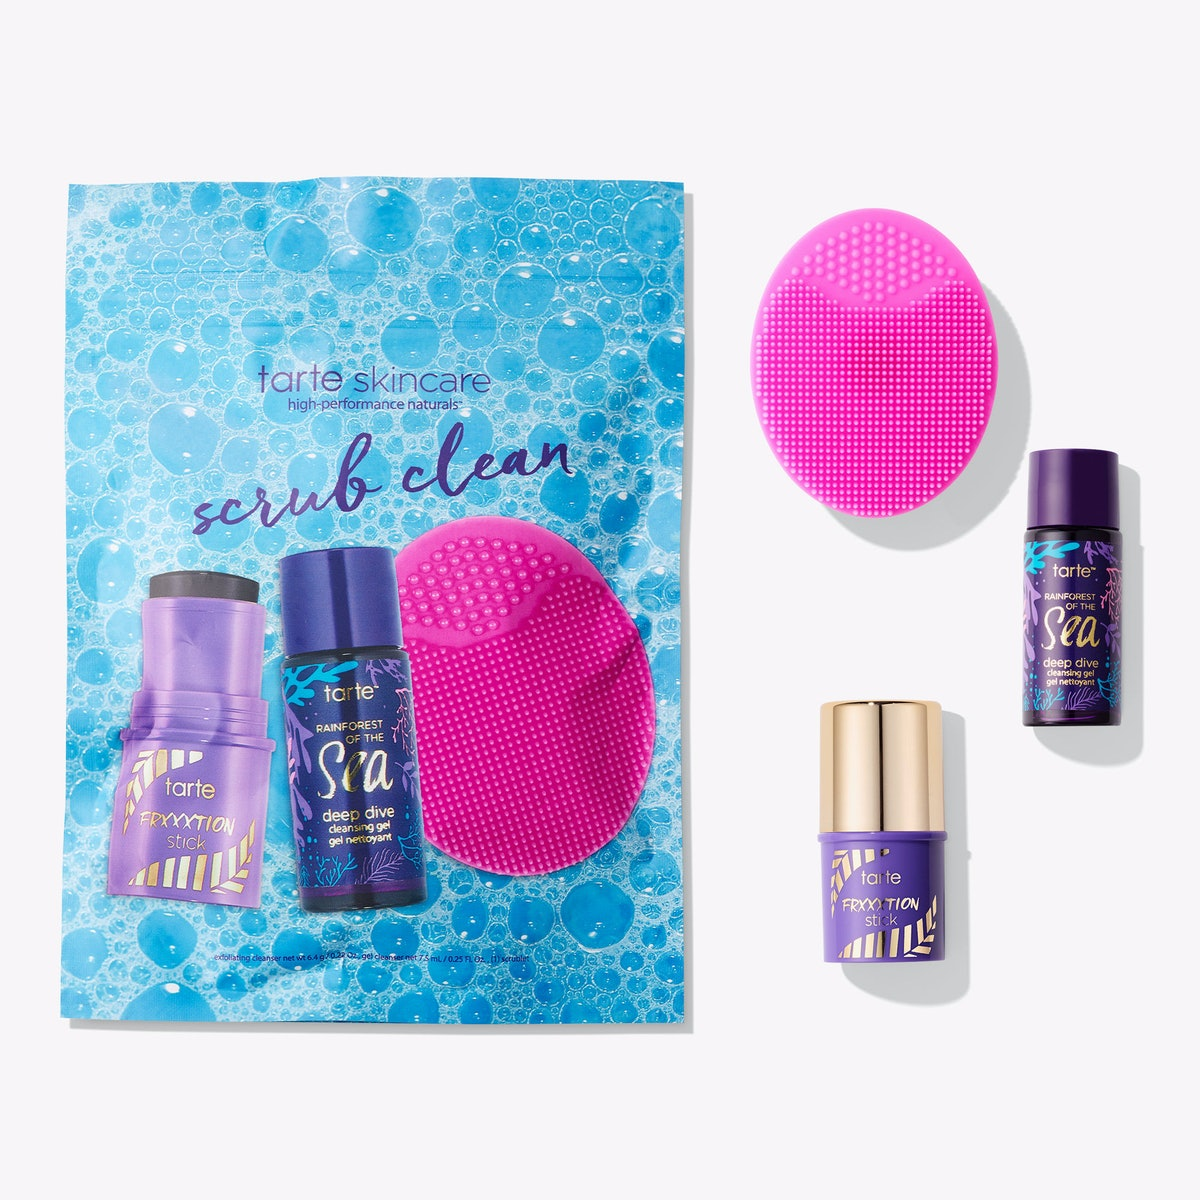 Limited-Edition Scrub Clean Cleansing Set